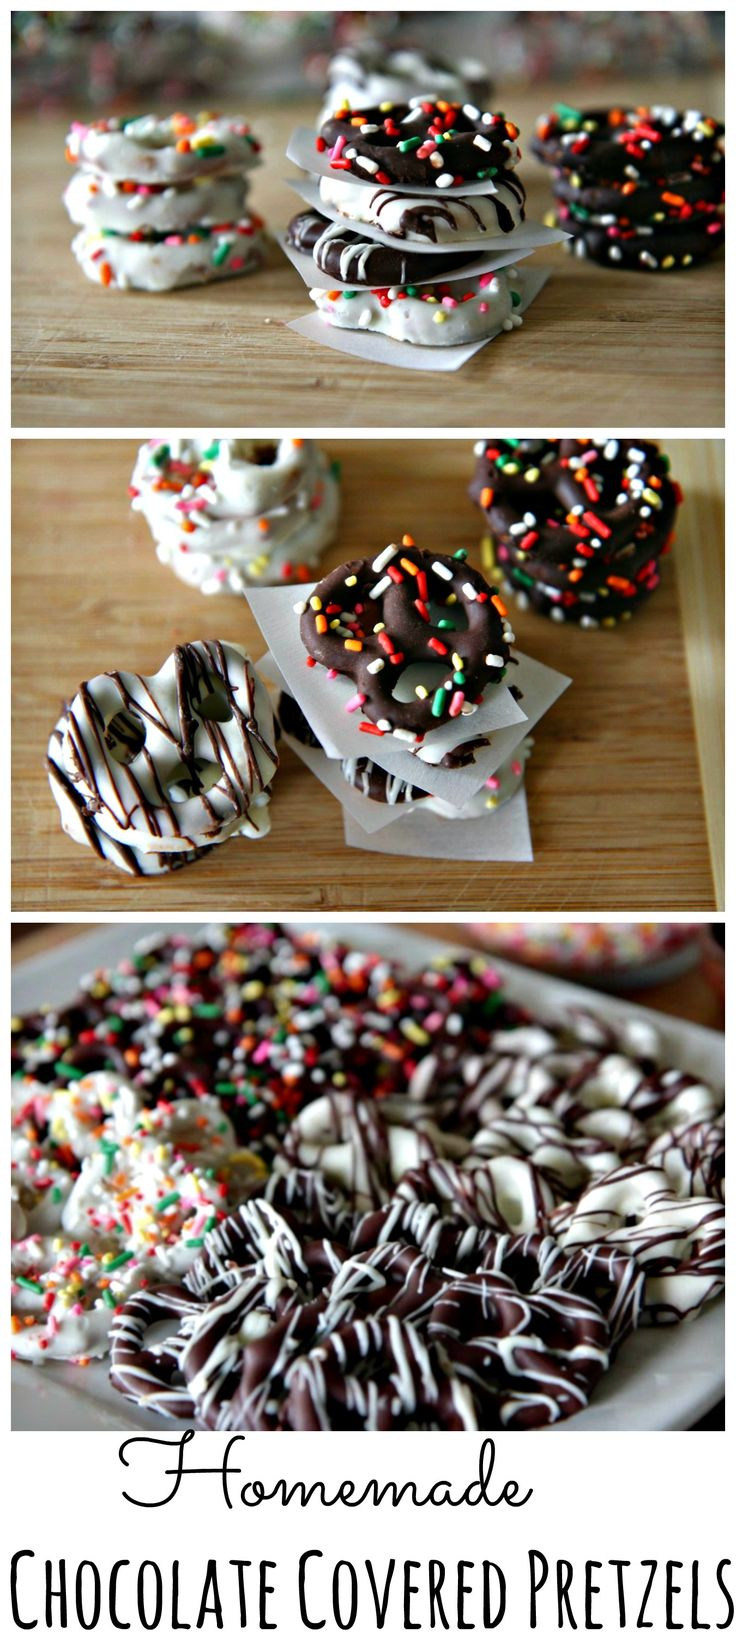 #Homemade Chocolate Covered #Pretzels - great to make with your kids! #BacktoschoolFun